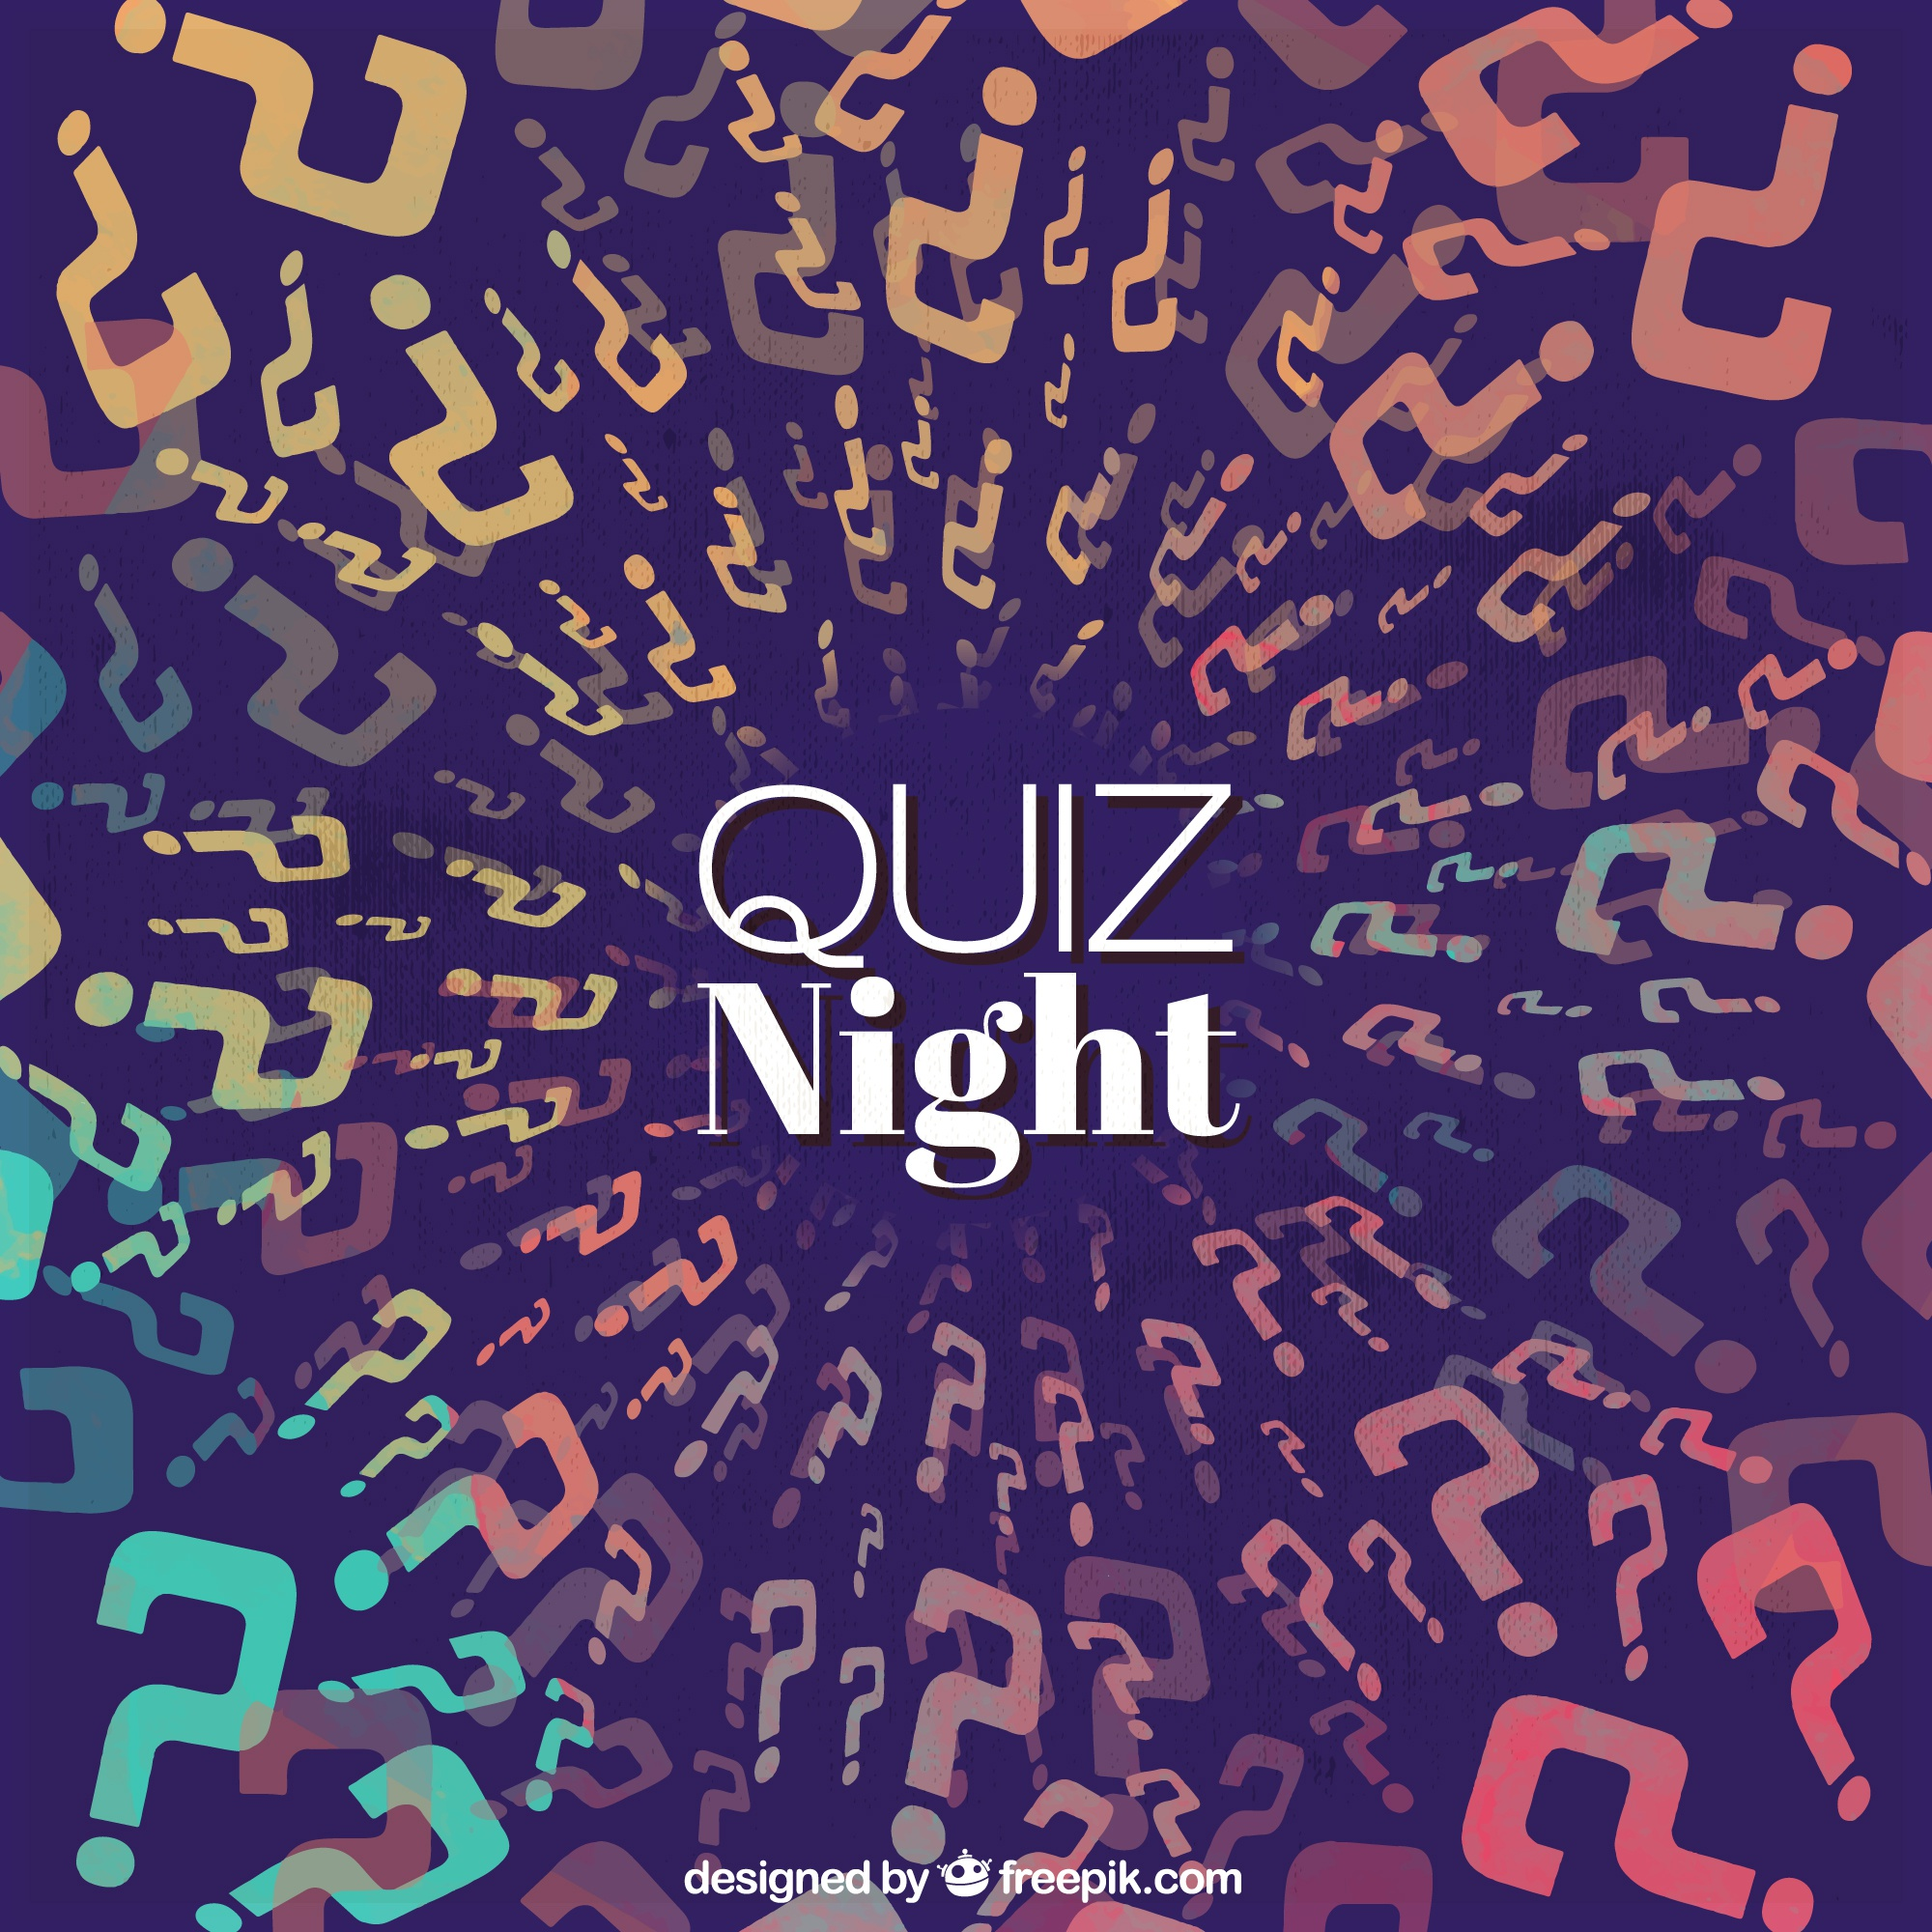 Dark blue background with colorful question marks